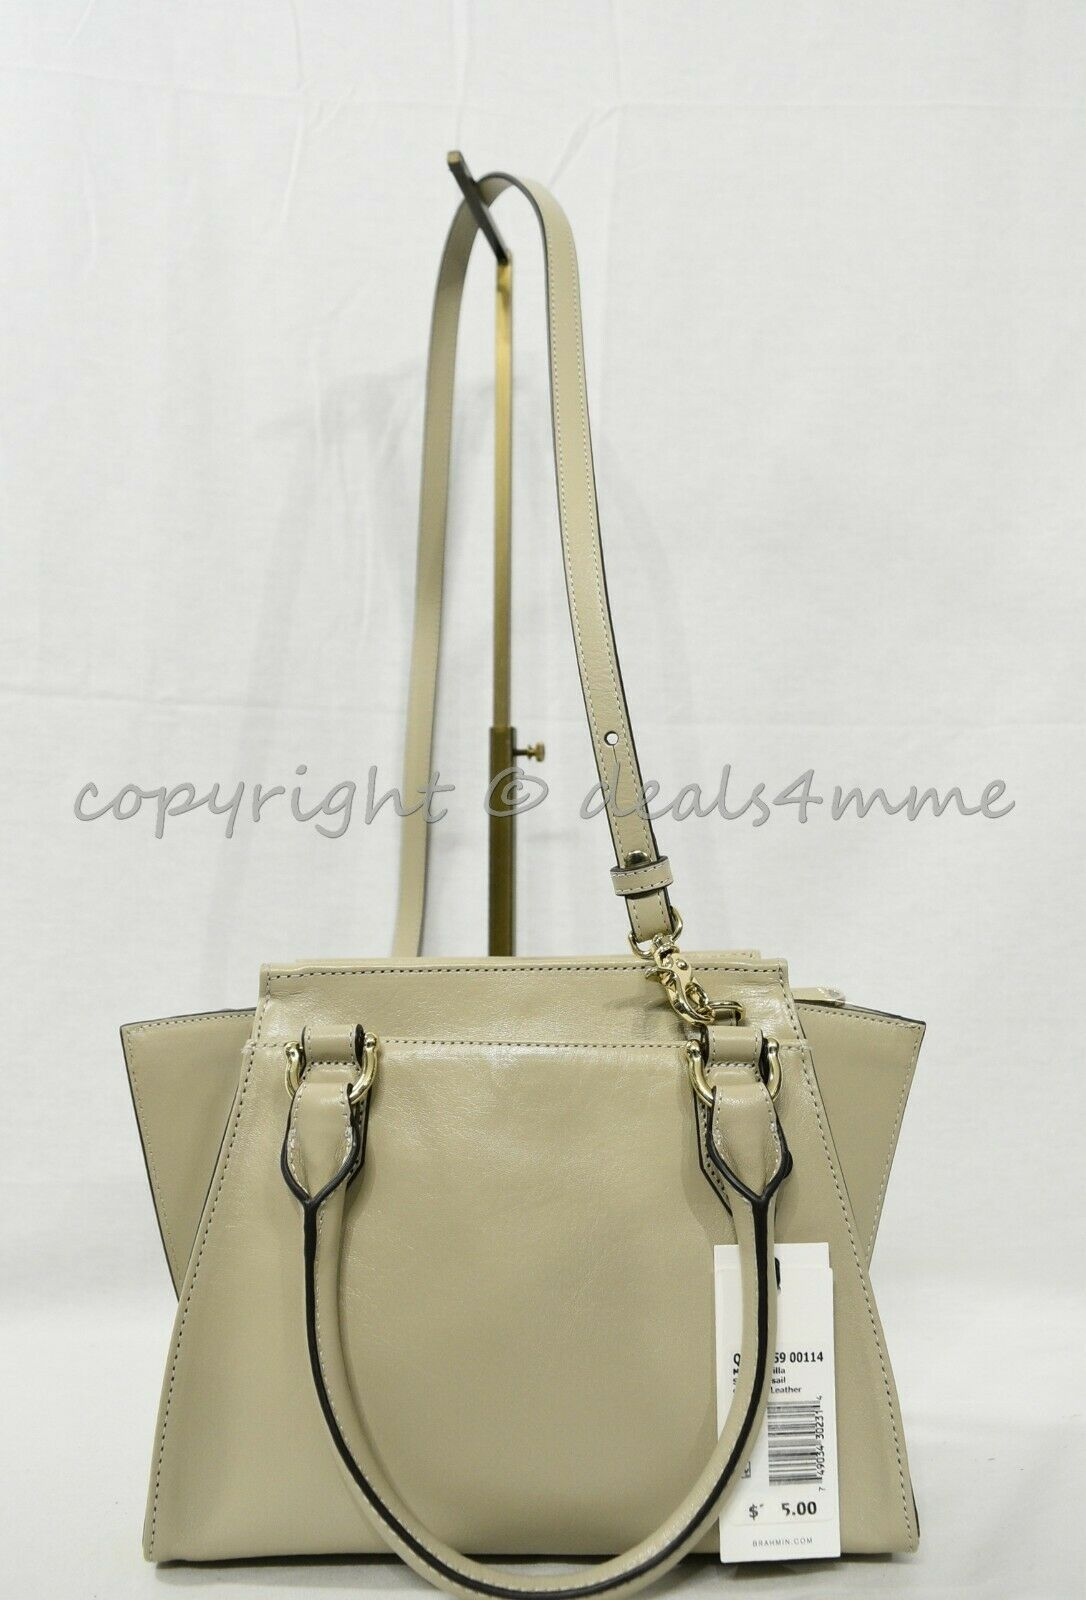 NWT Brahmin Mini Priscilla Smooth Leather Satchel/Shoulder Bag in Sand Topsail image 9